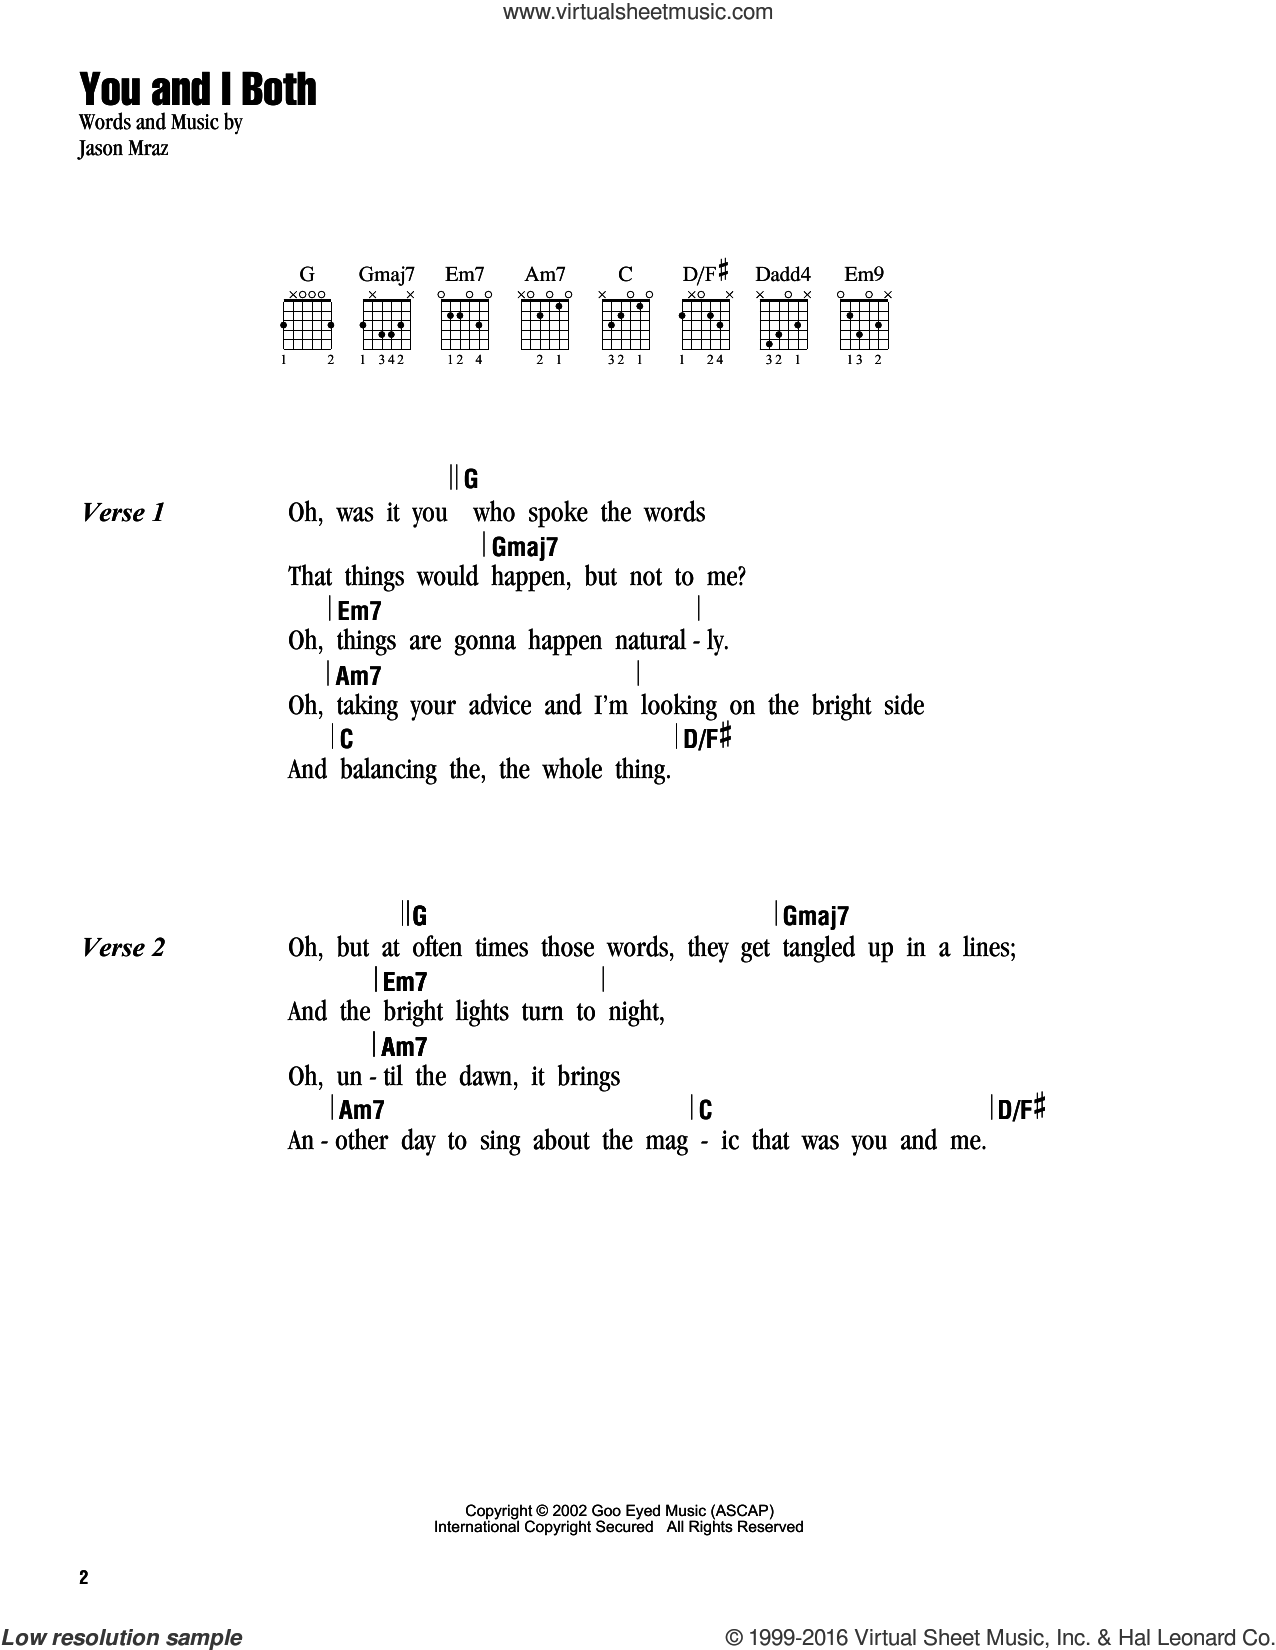 You and I Both sheet music for guitar (chords) by Jason Mraz, intermediate skill level